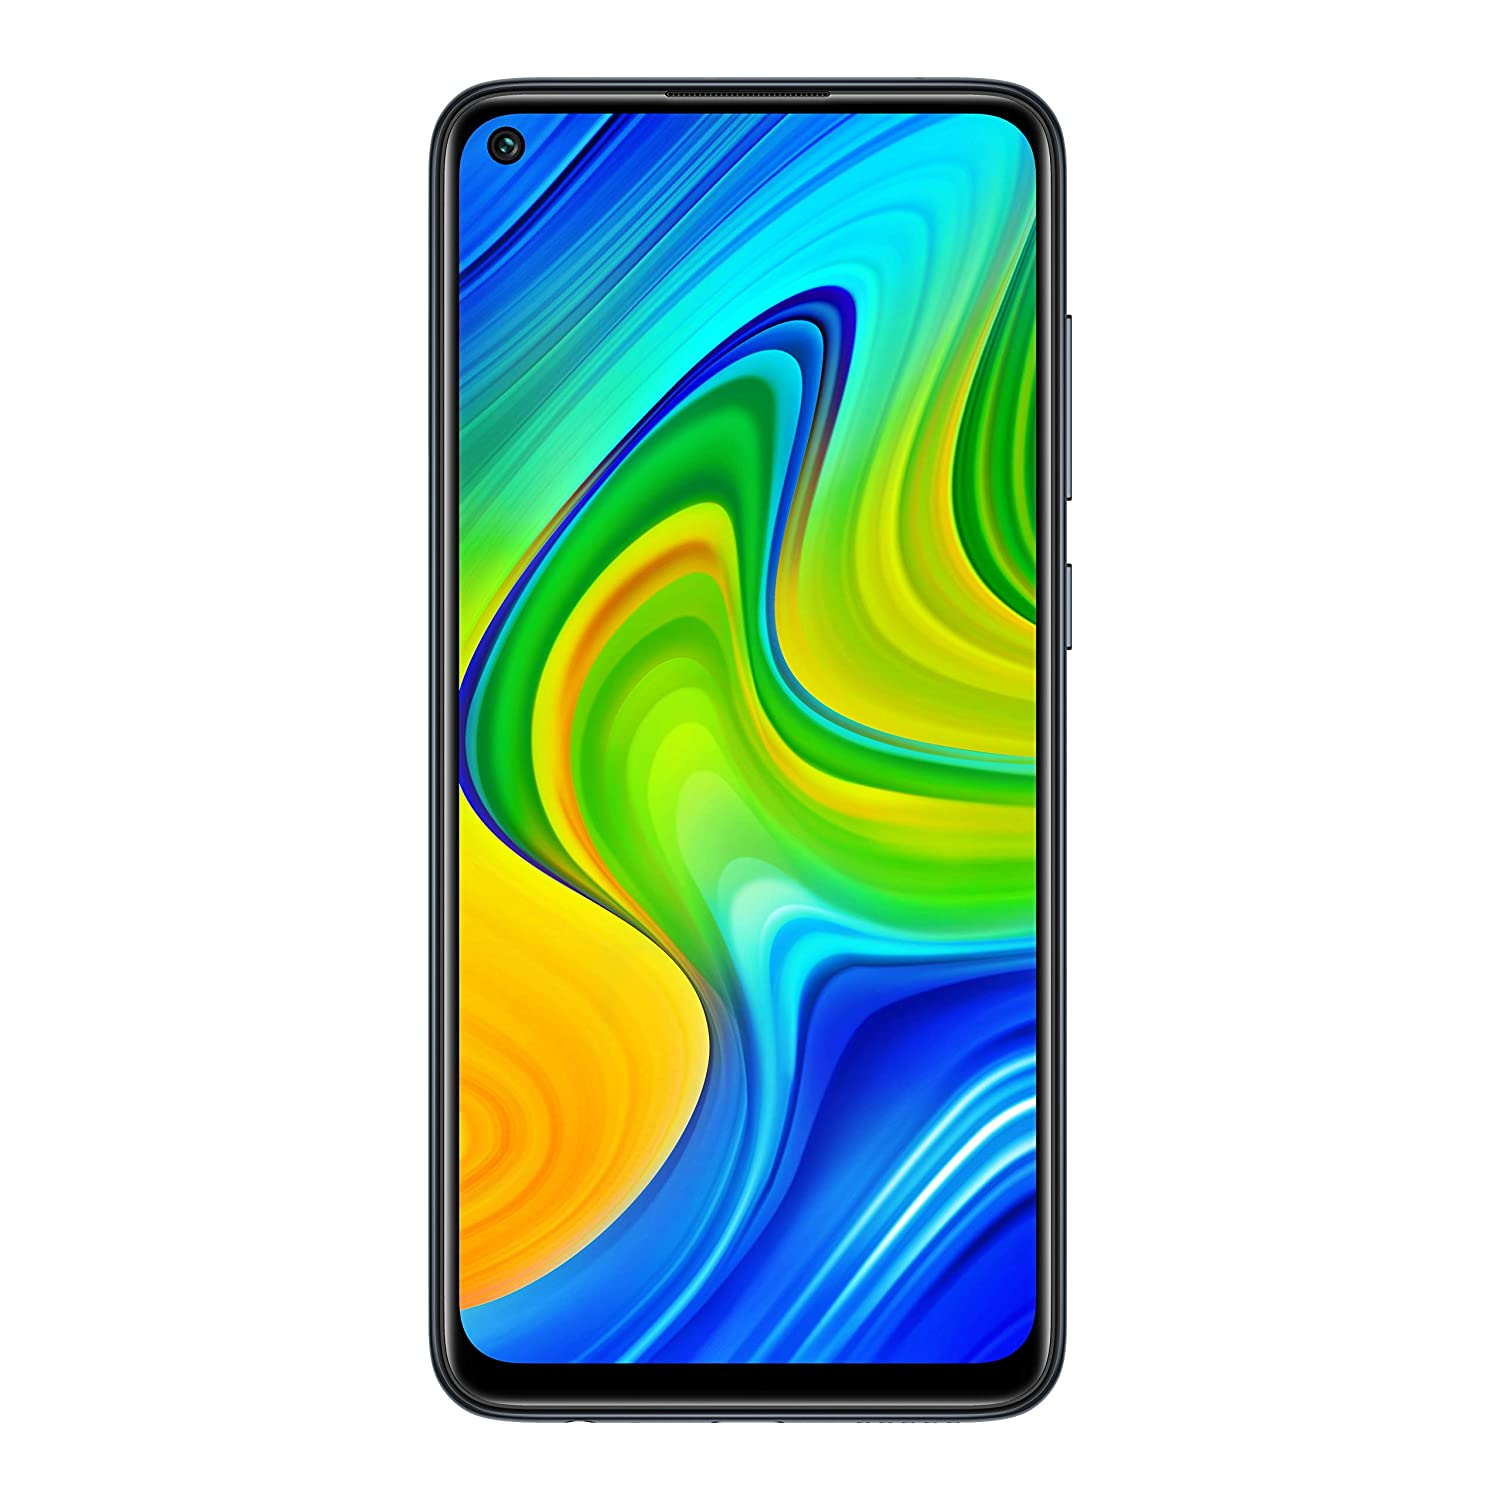 Redmi Note 9 (Shadow Black, 4GB RAM, 64GB Storage)